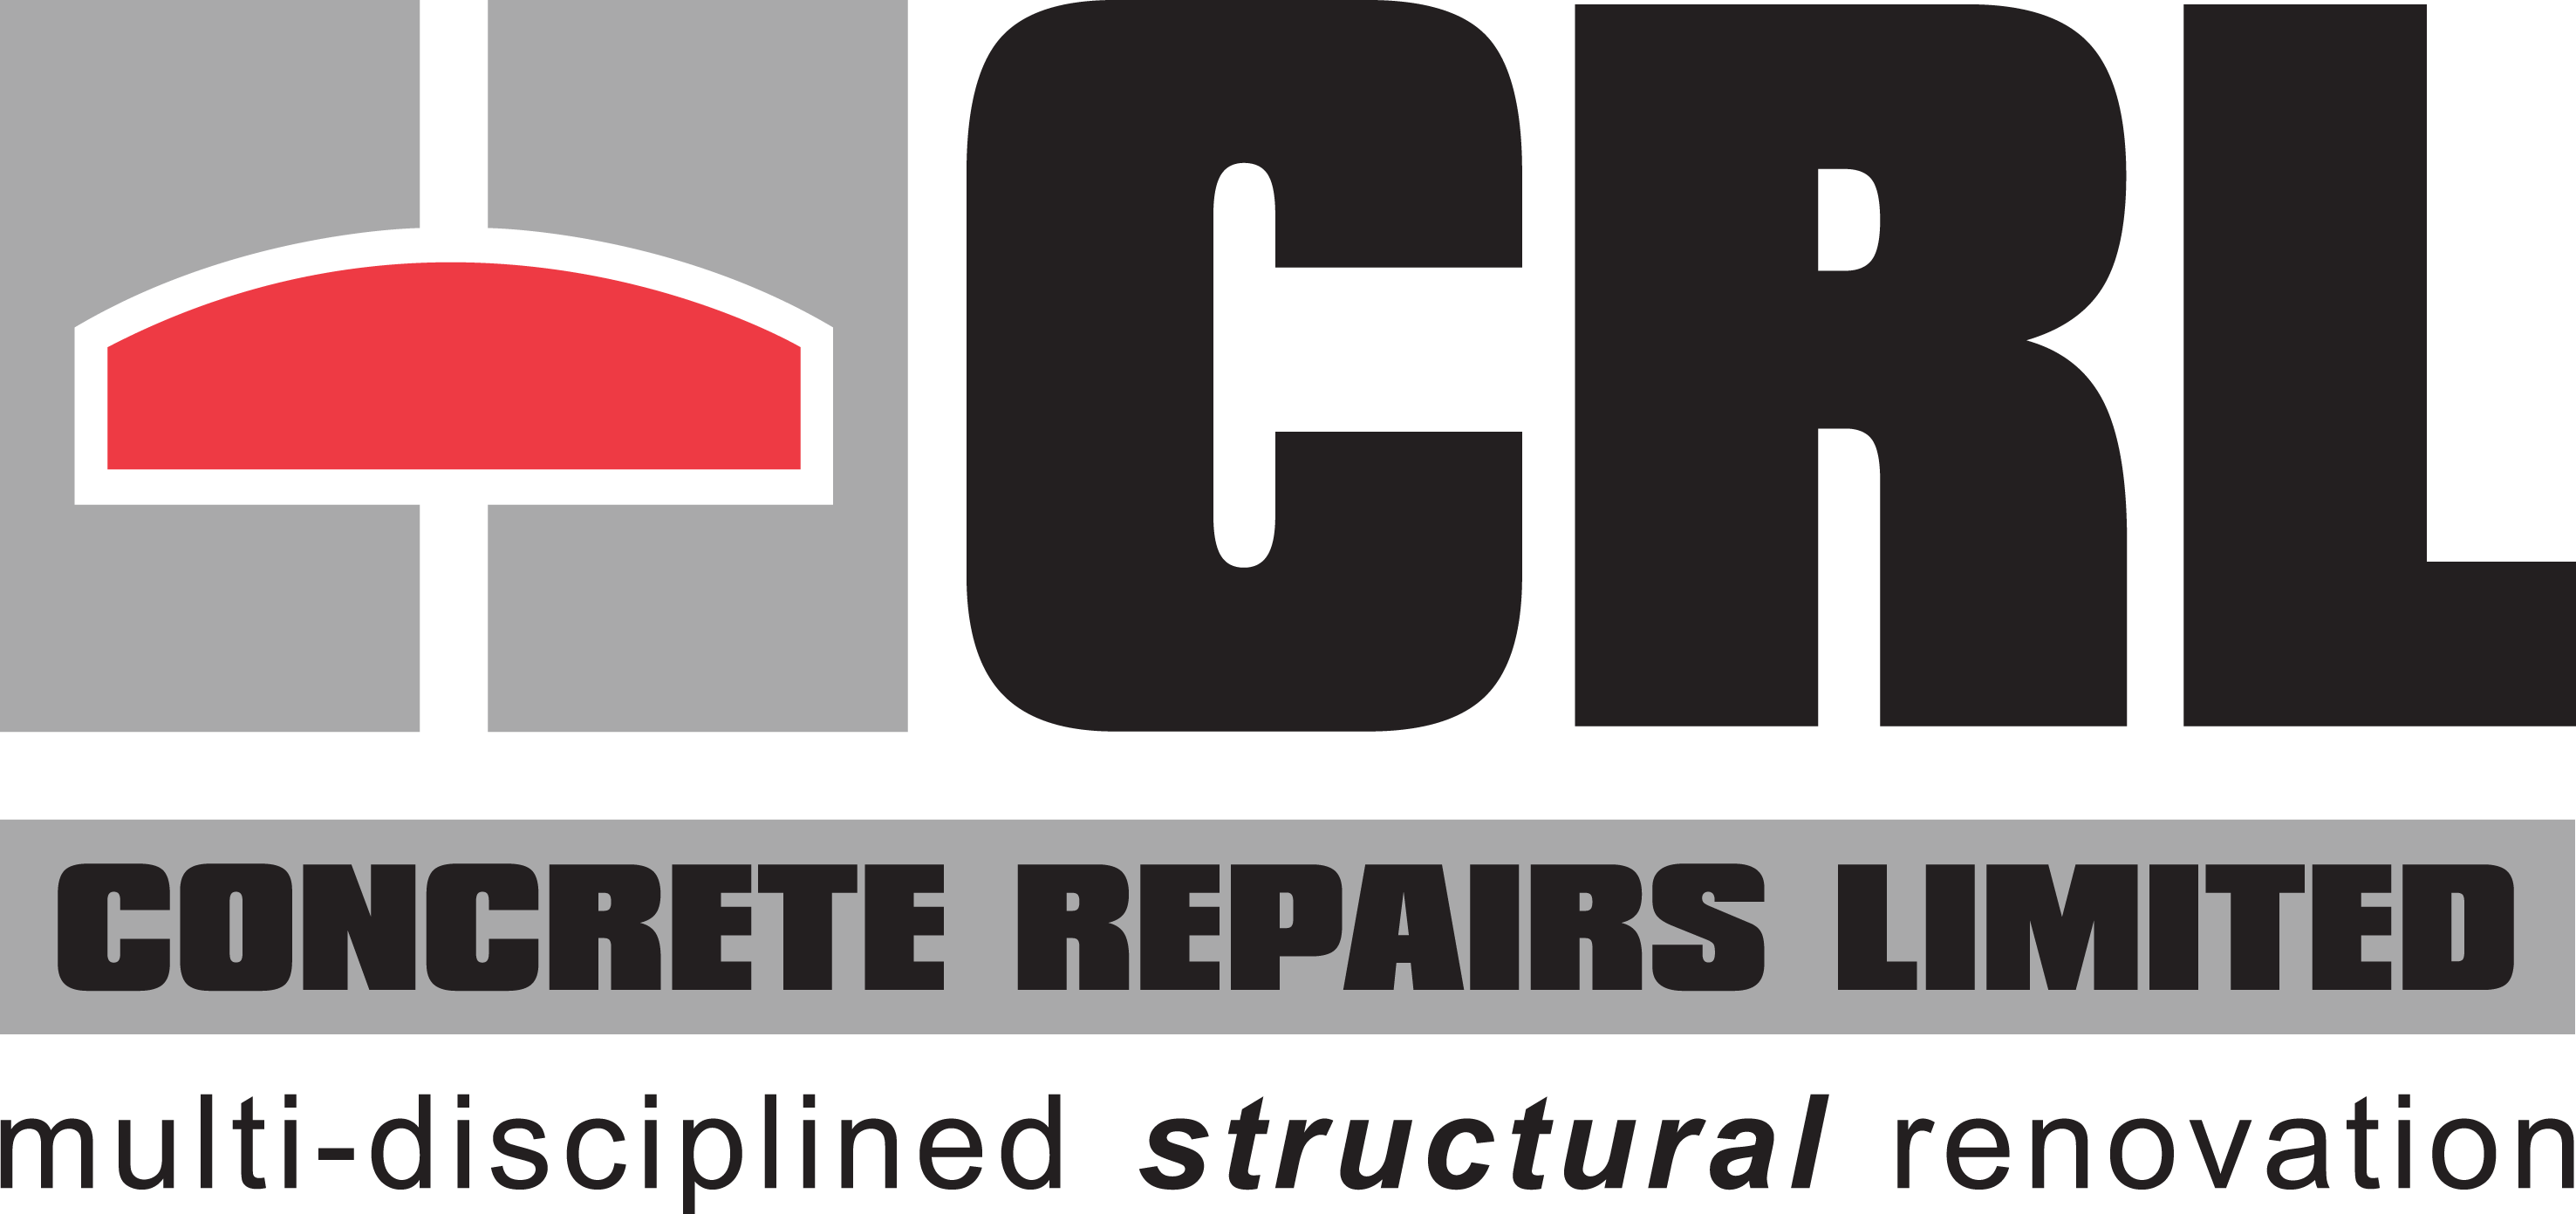 Concrete Repairs Limited Logo